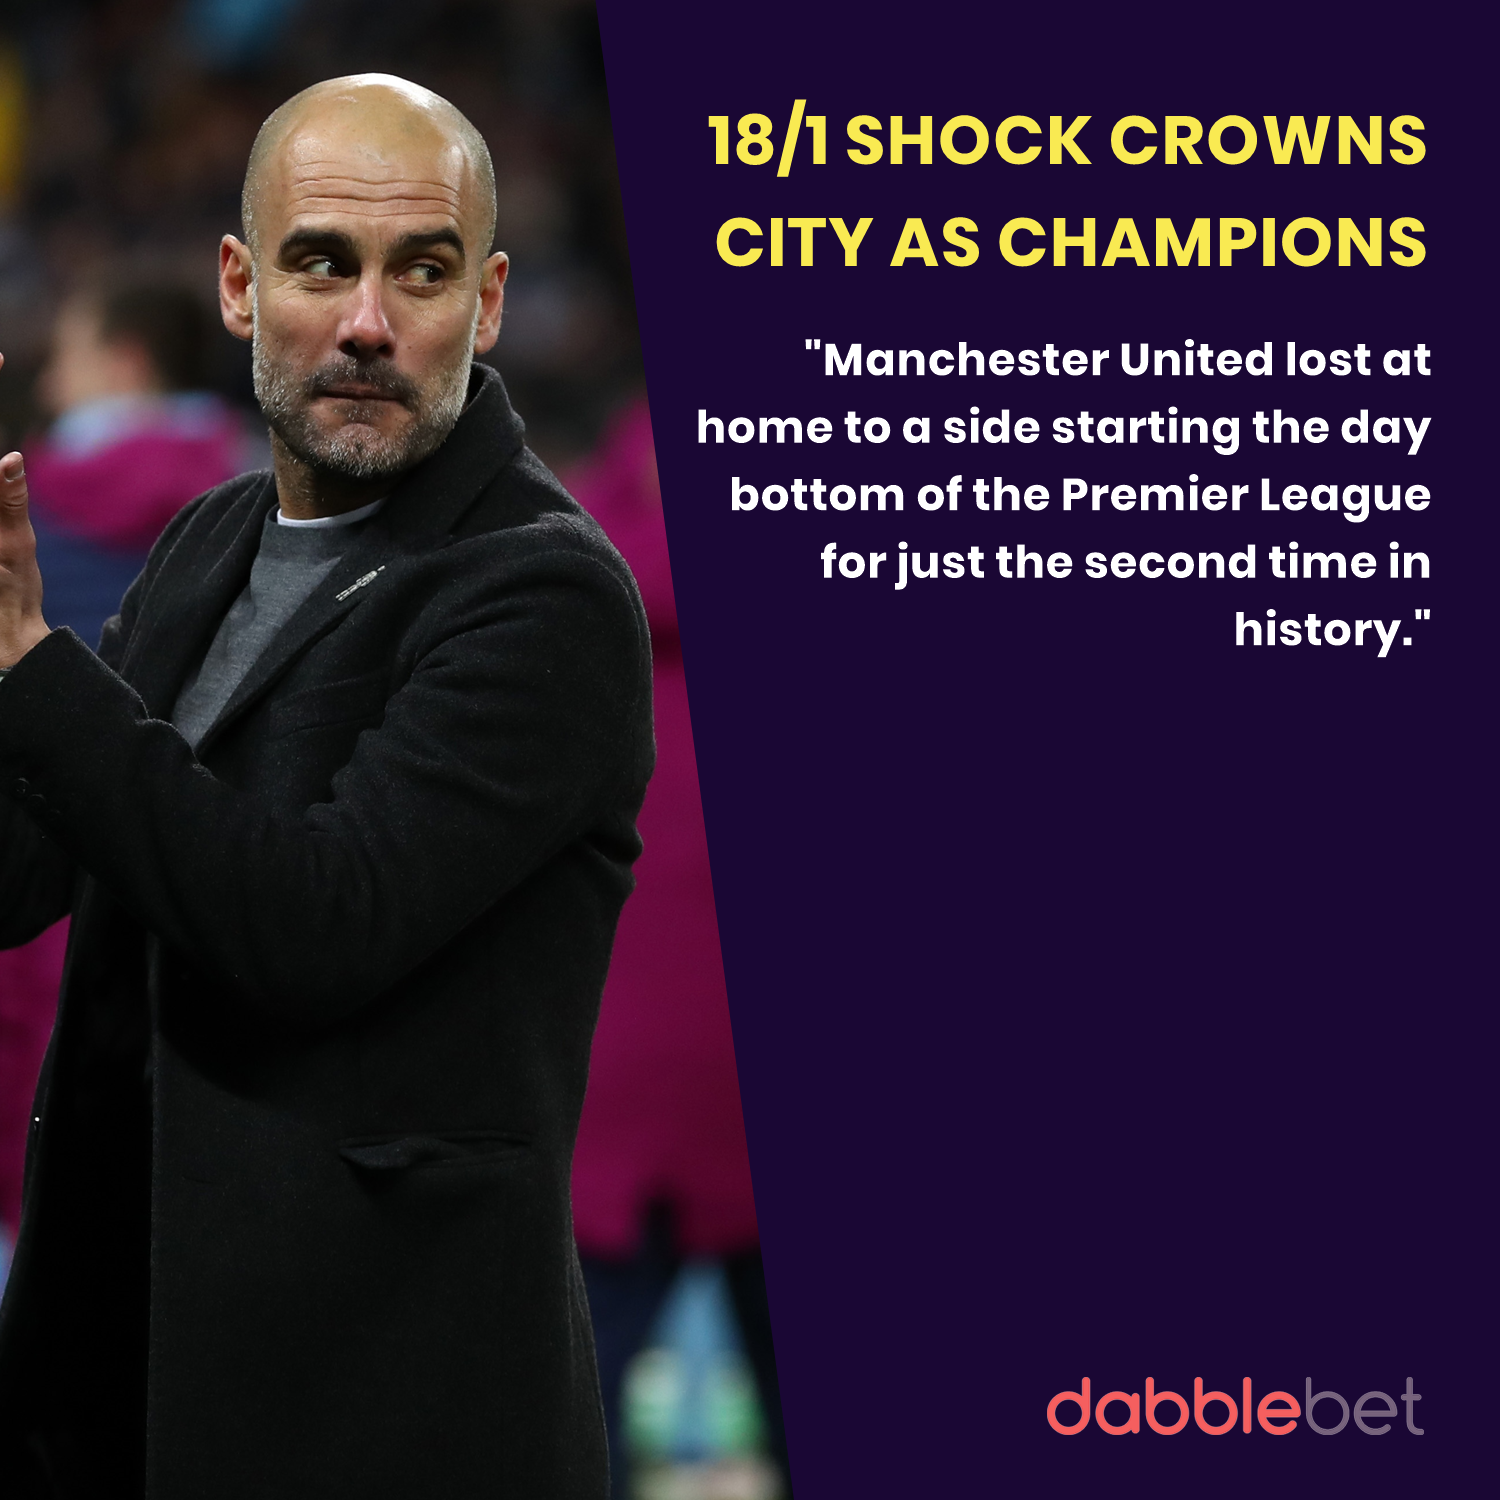 Manchester City crowned as champions